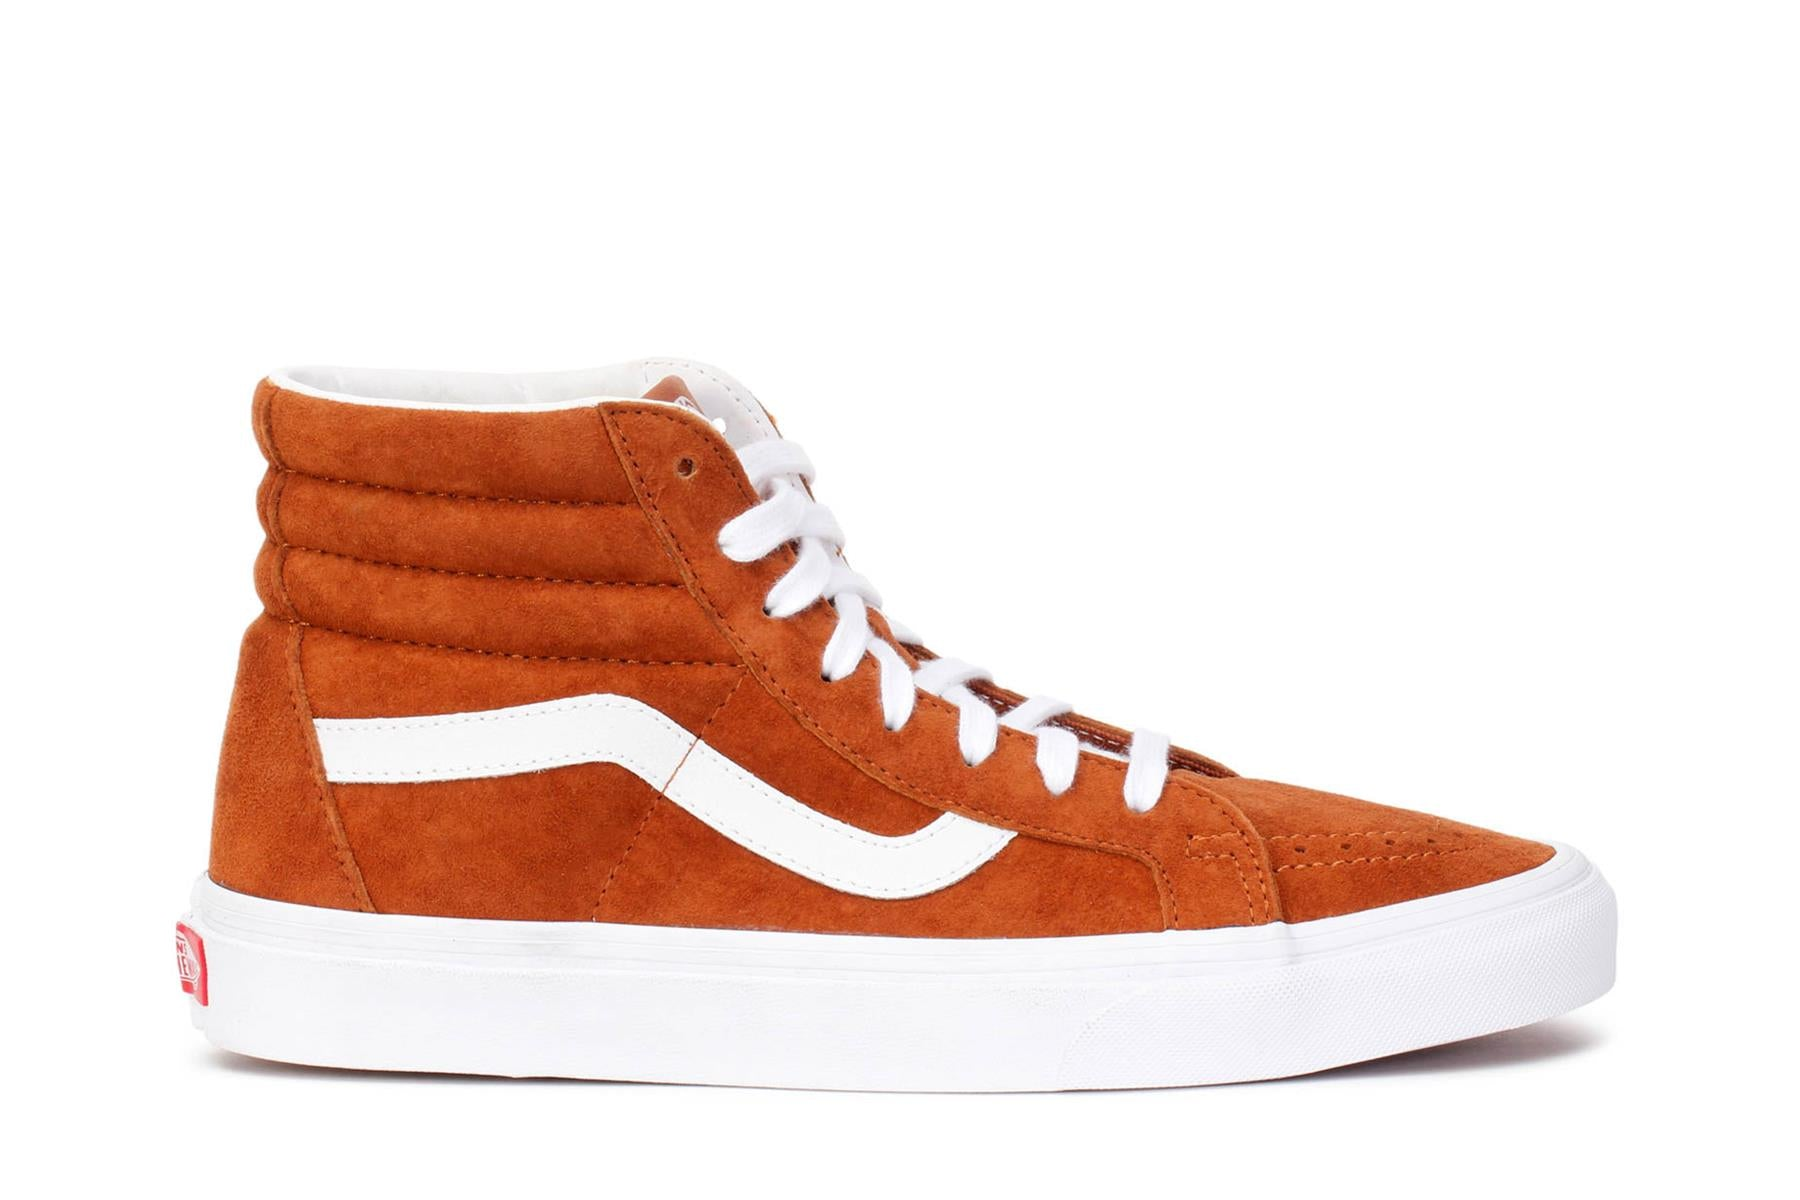 vans-mens-sneakers-sk8-hi-reissue-brown-suede-vn0a2xsbu5k-main